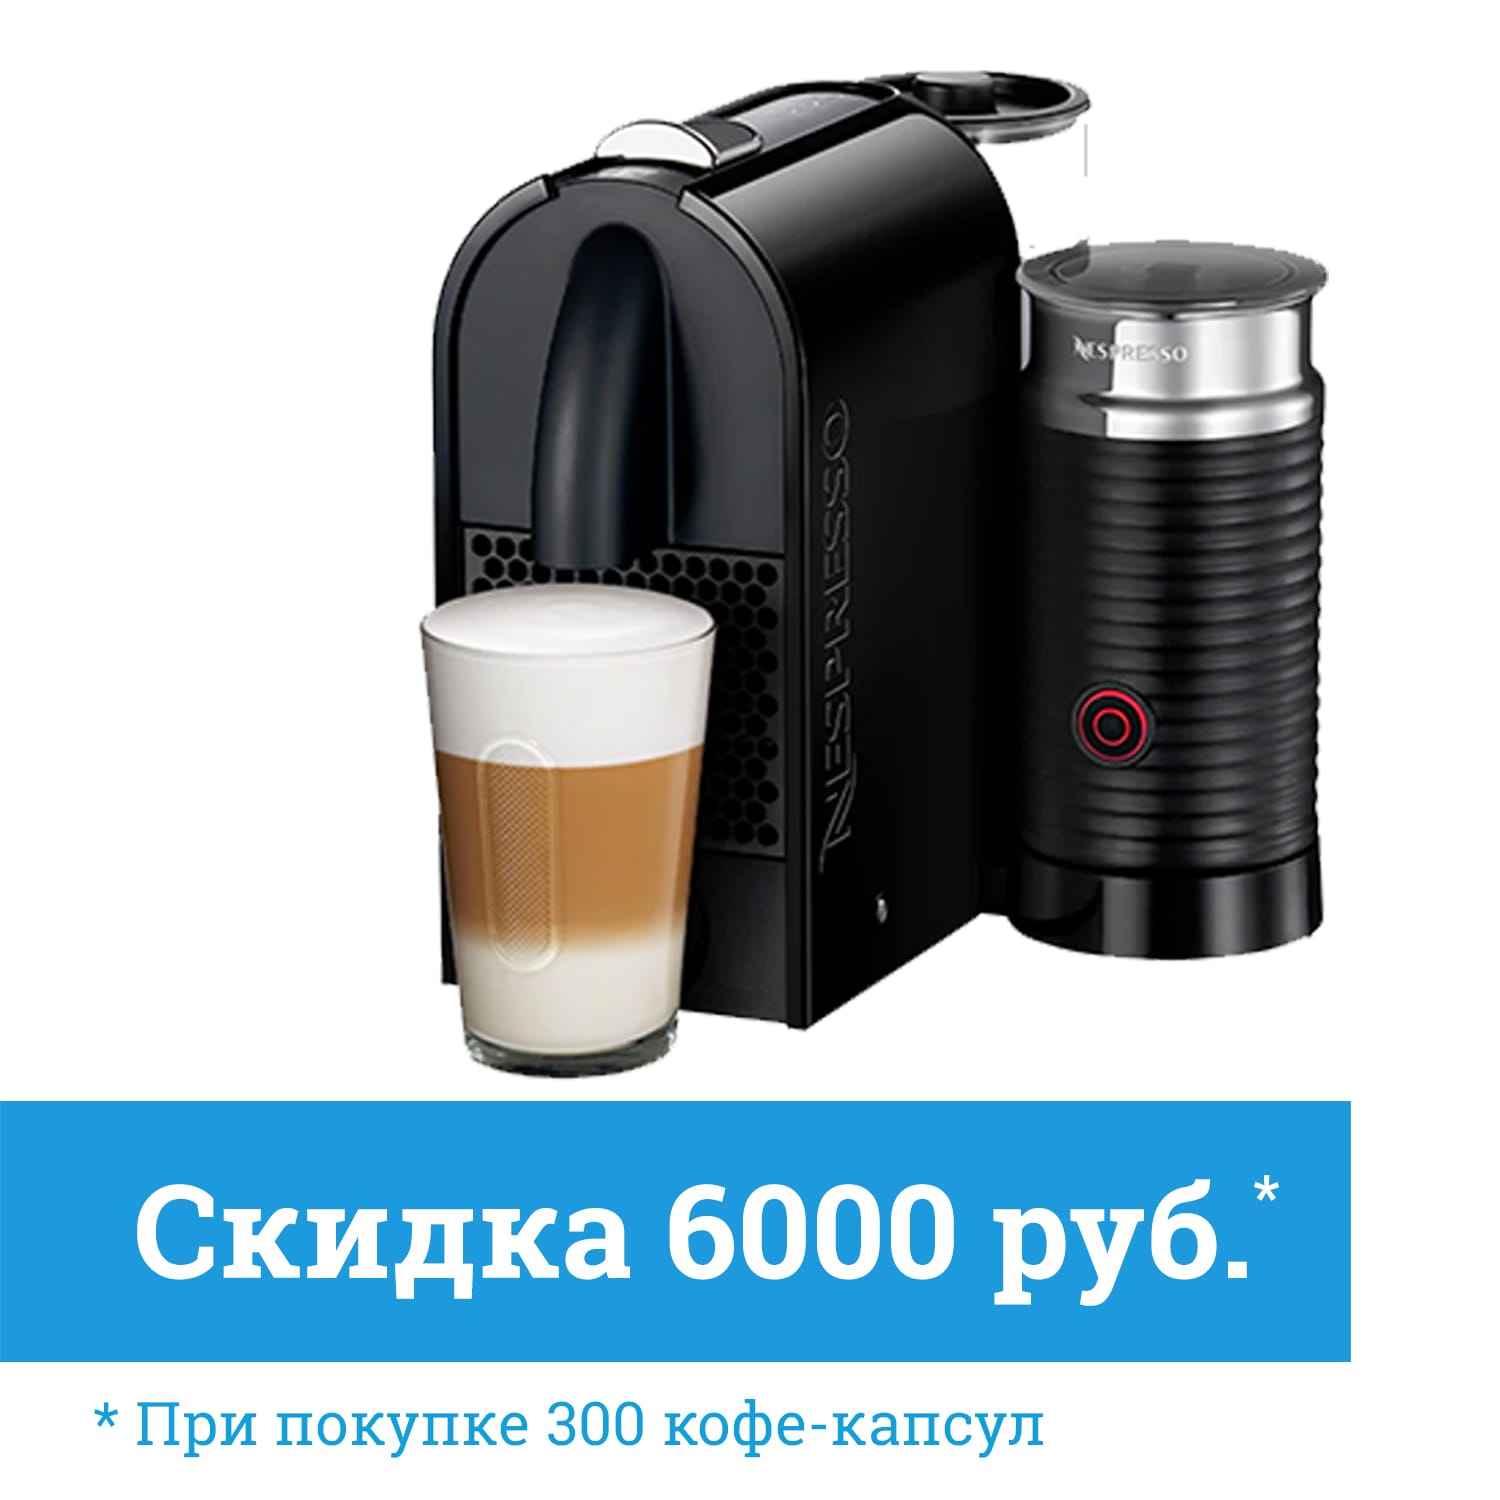 Кофемашина Delonghi Nespresso UMilk Black со скидкой